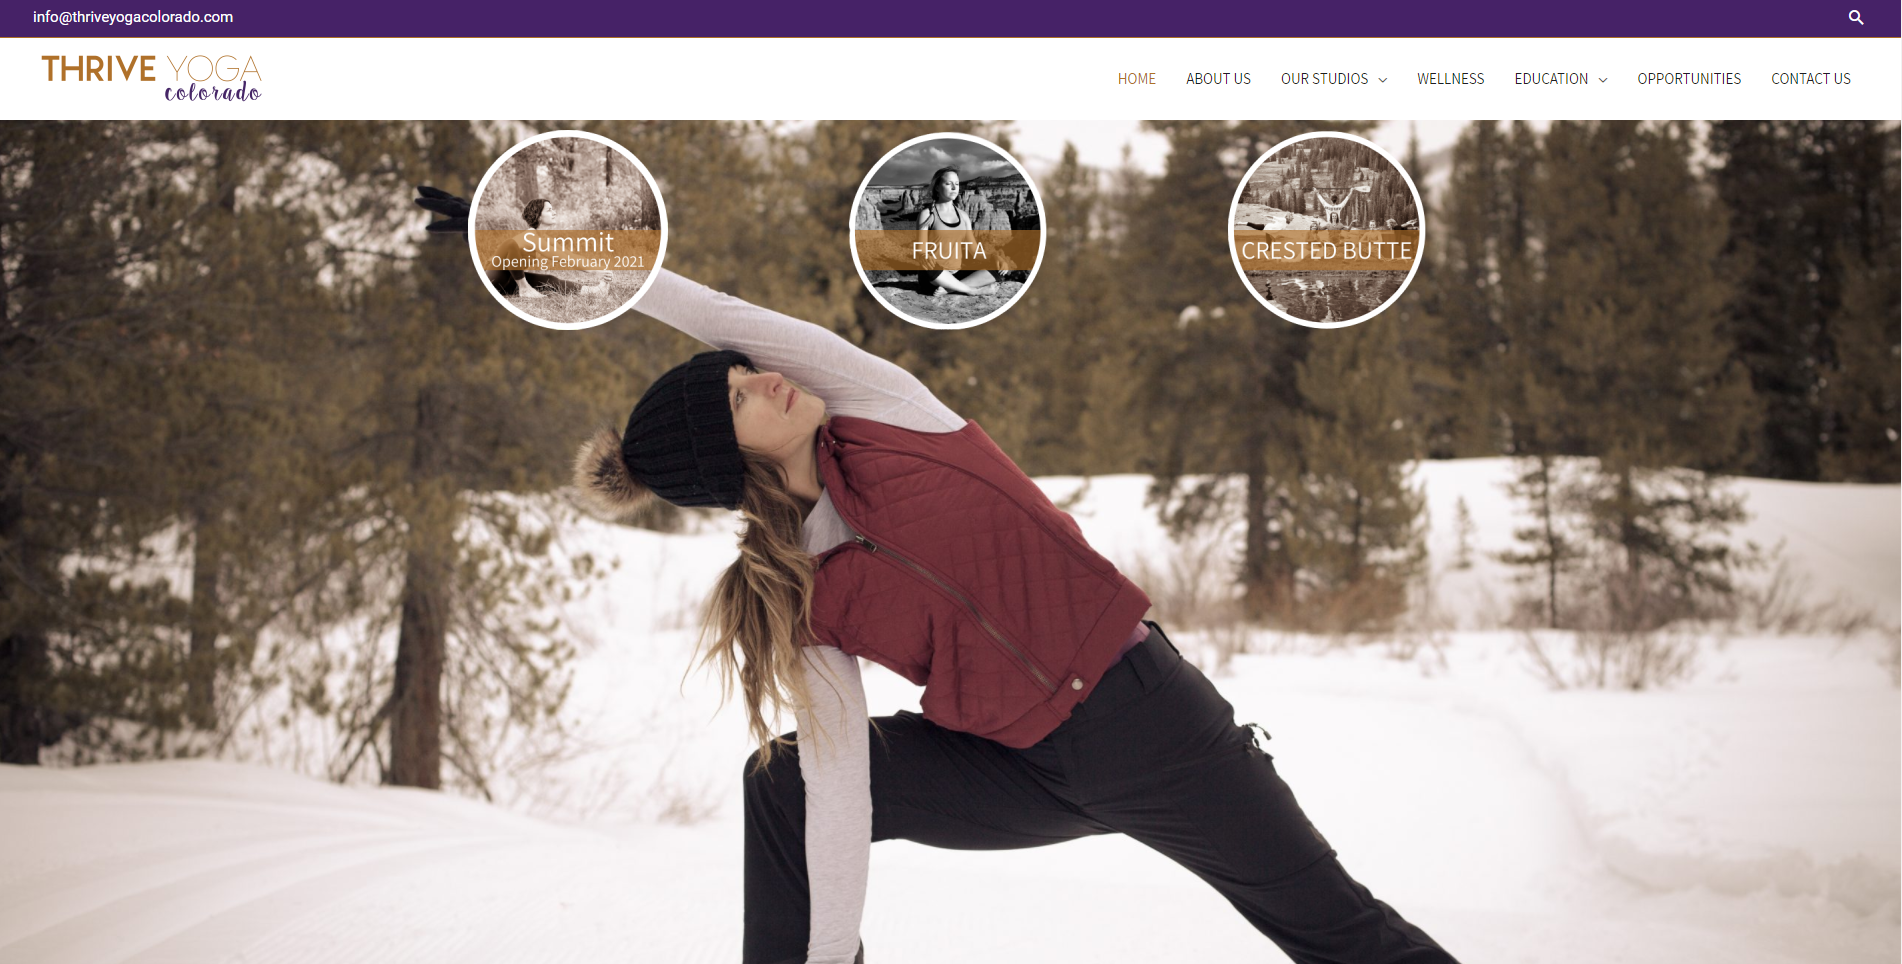 Thrive Yoga Colorado Main Pageeeeee